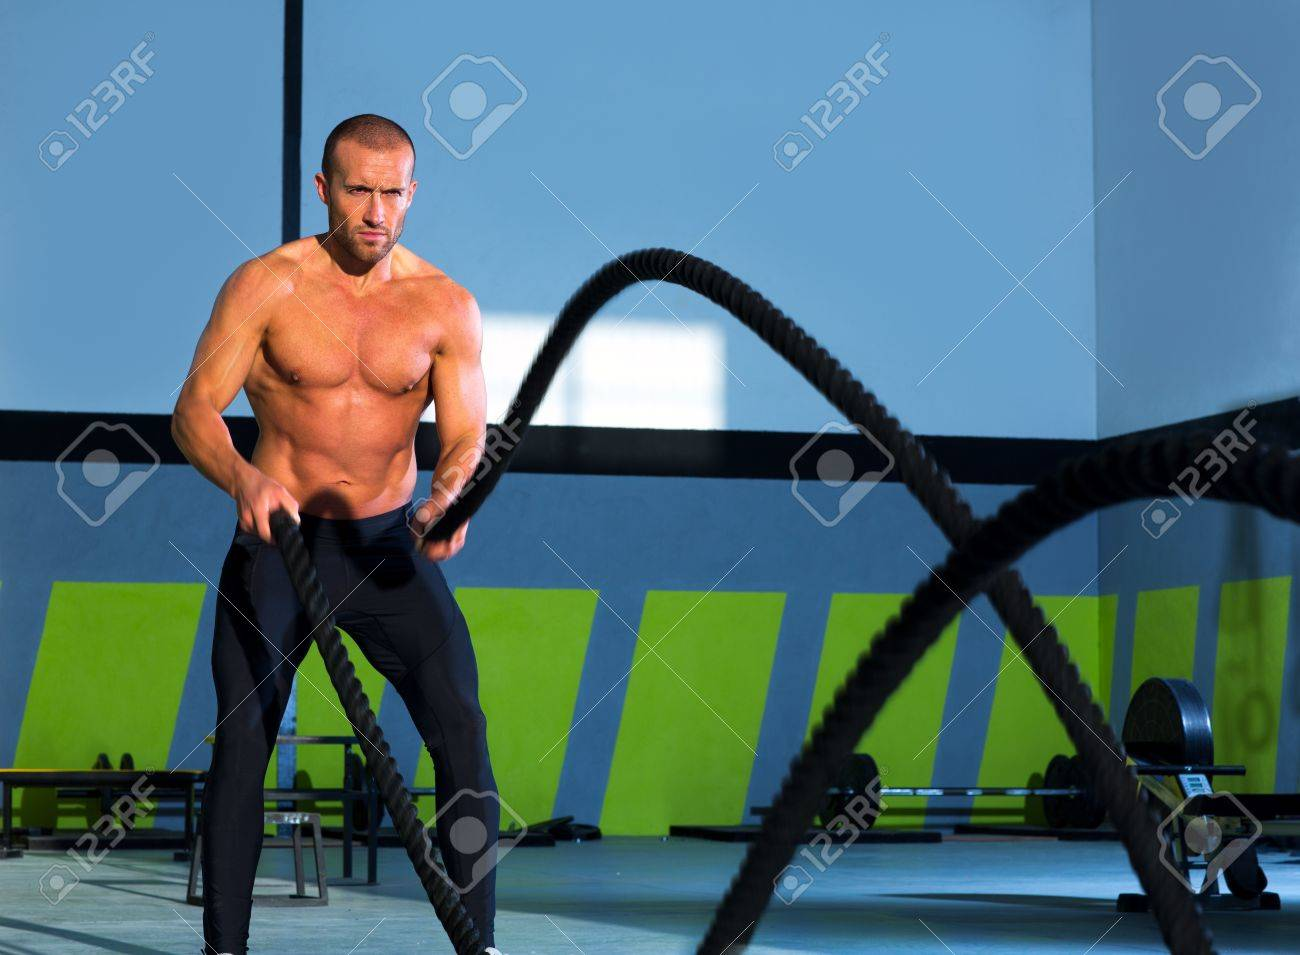 Crossfit battling ropes at gym workout fitness exercise Stock Photo - 17050612